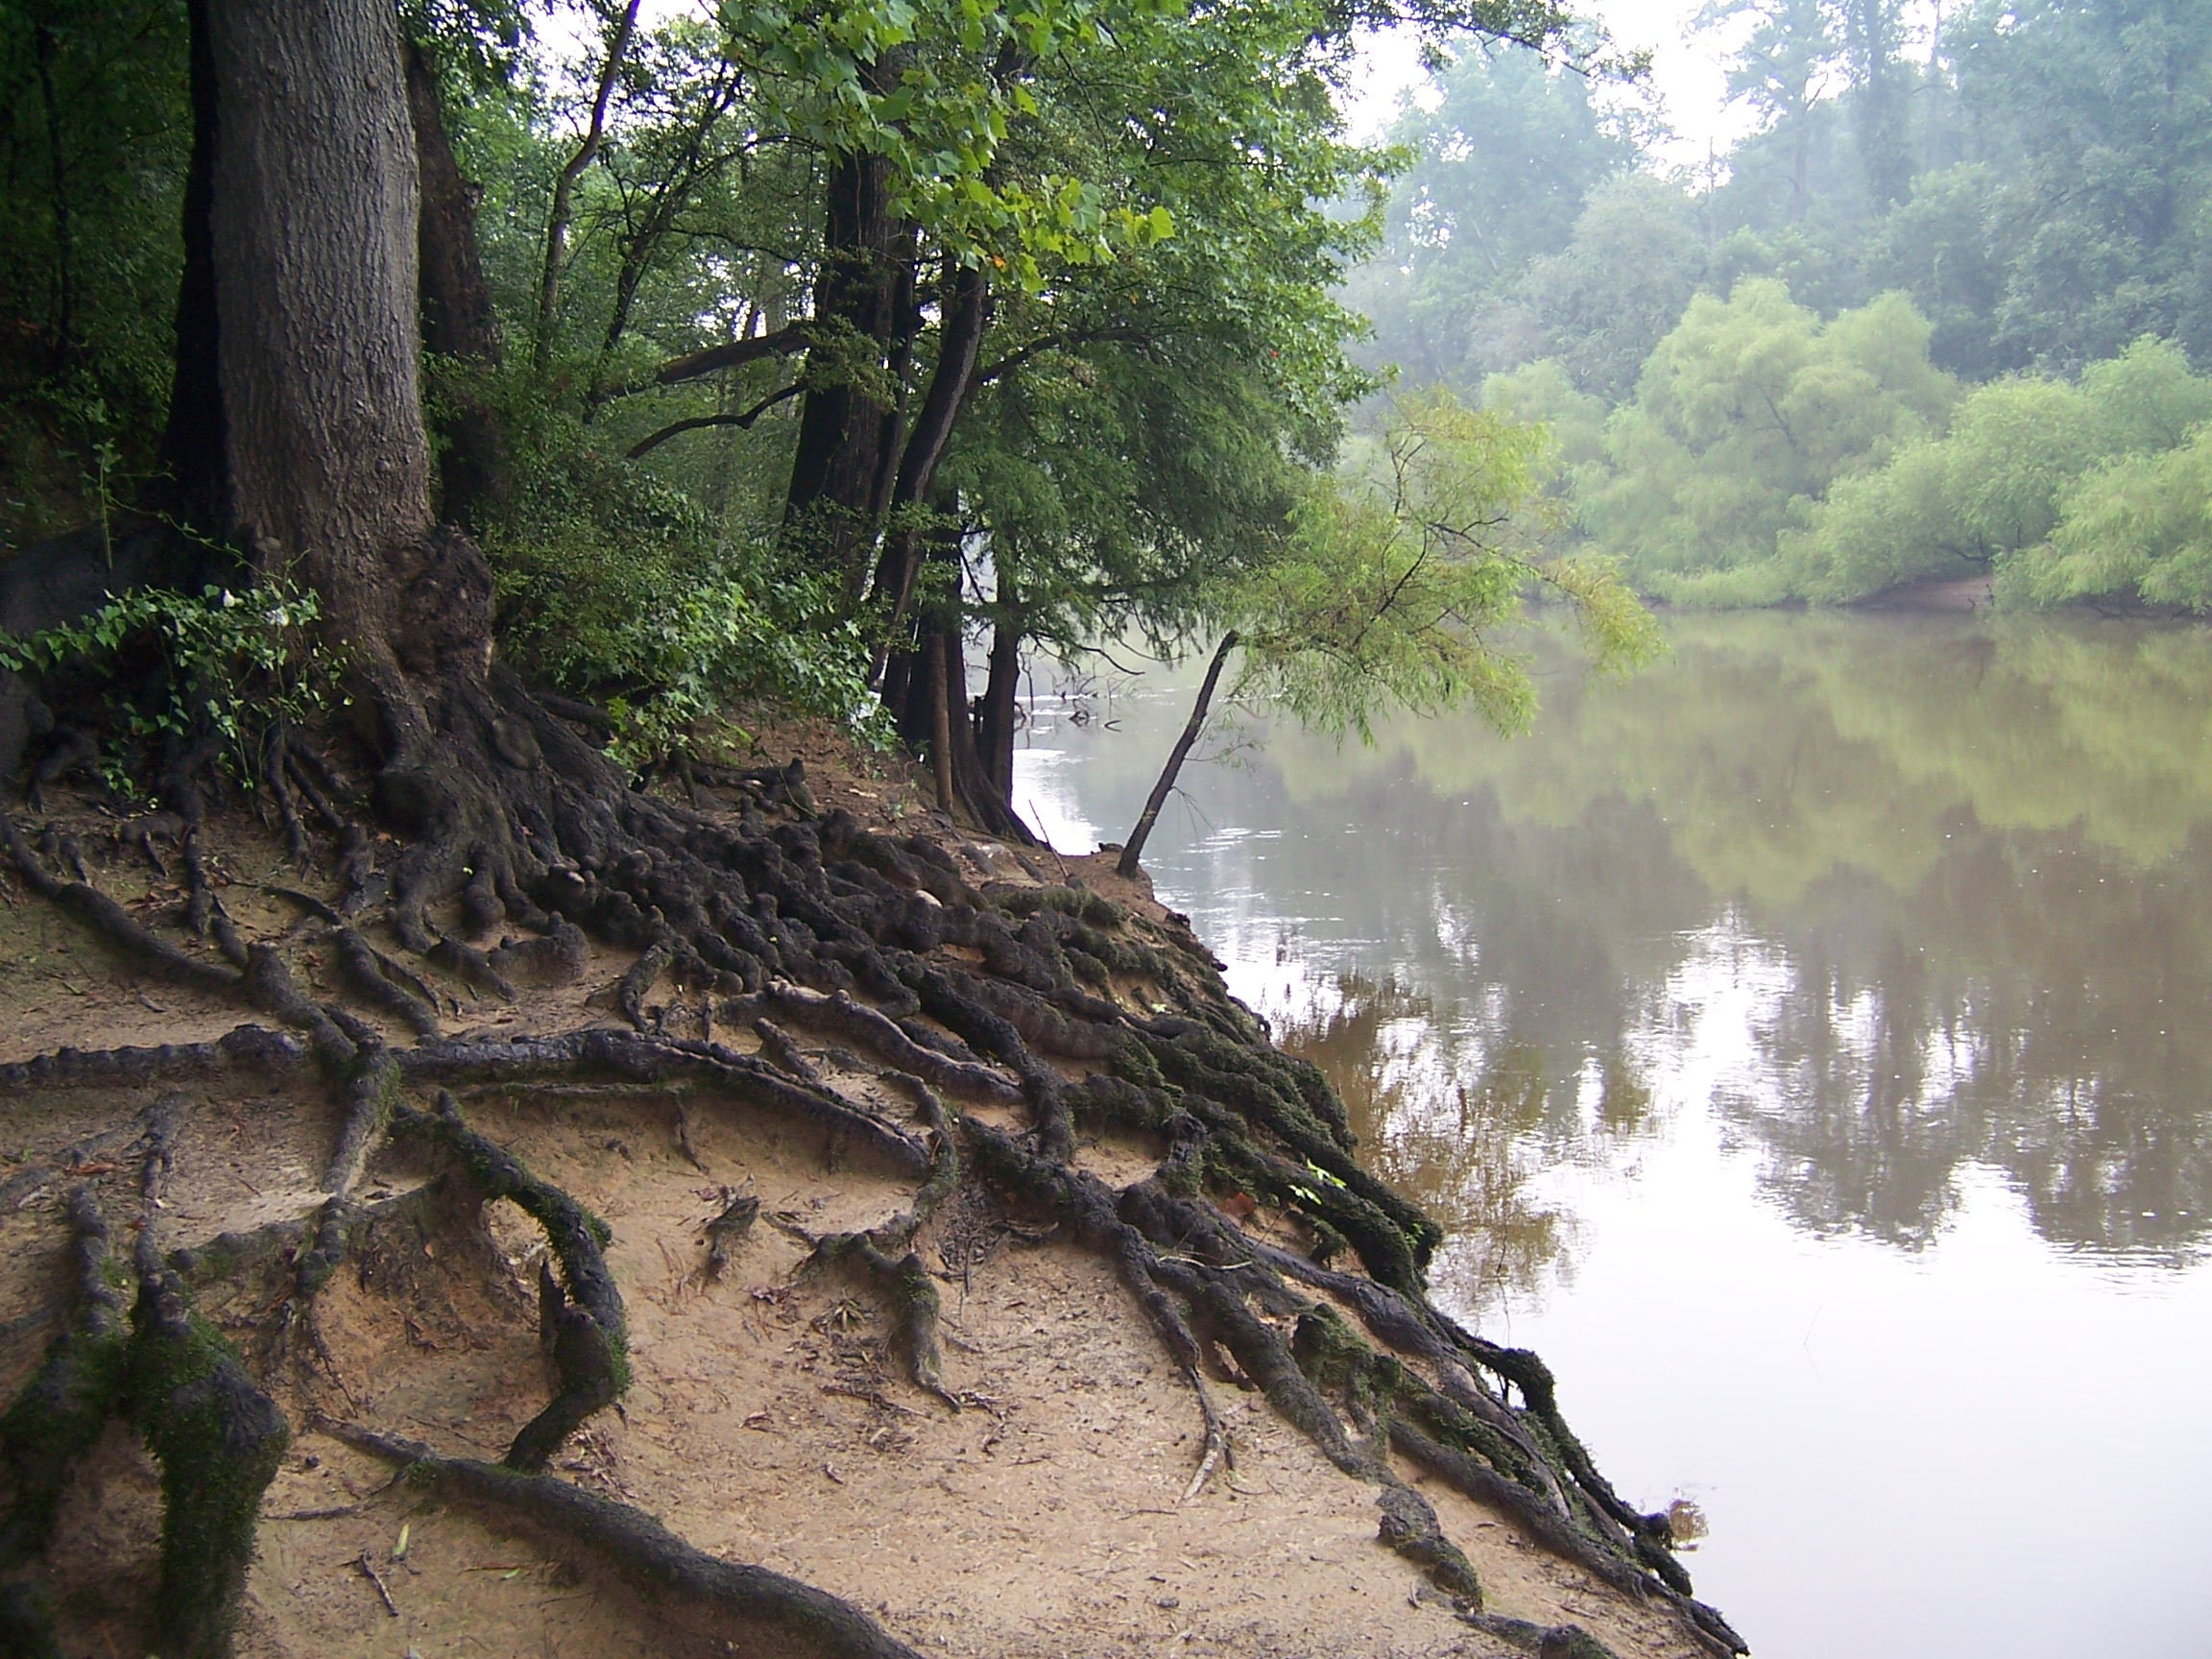 http://upload.wikimedia.org/wikipedia/commons/4/4d/Tree_Roots_at_Riverside.jpg